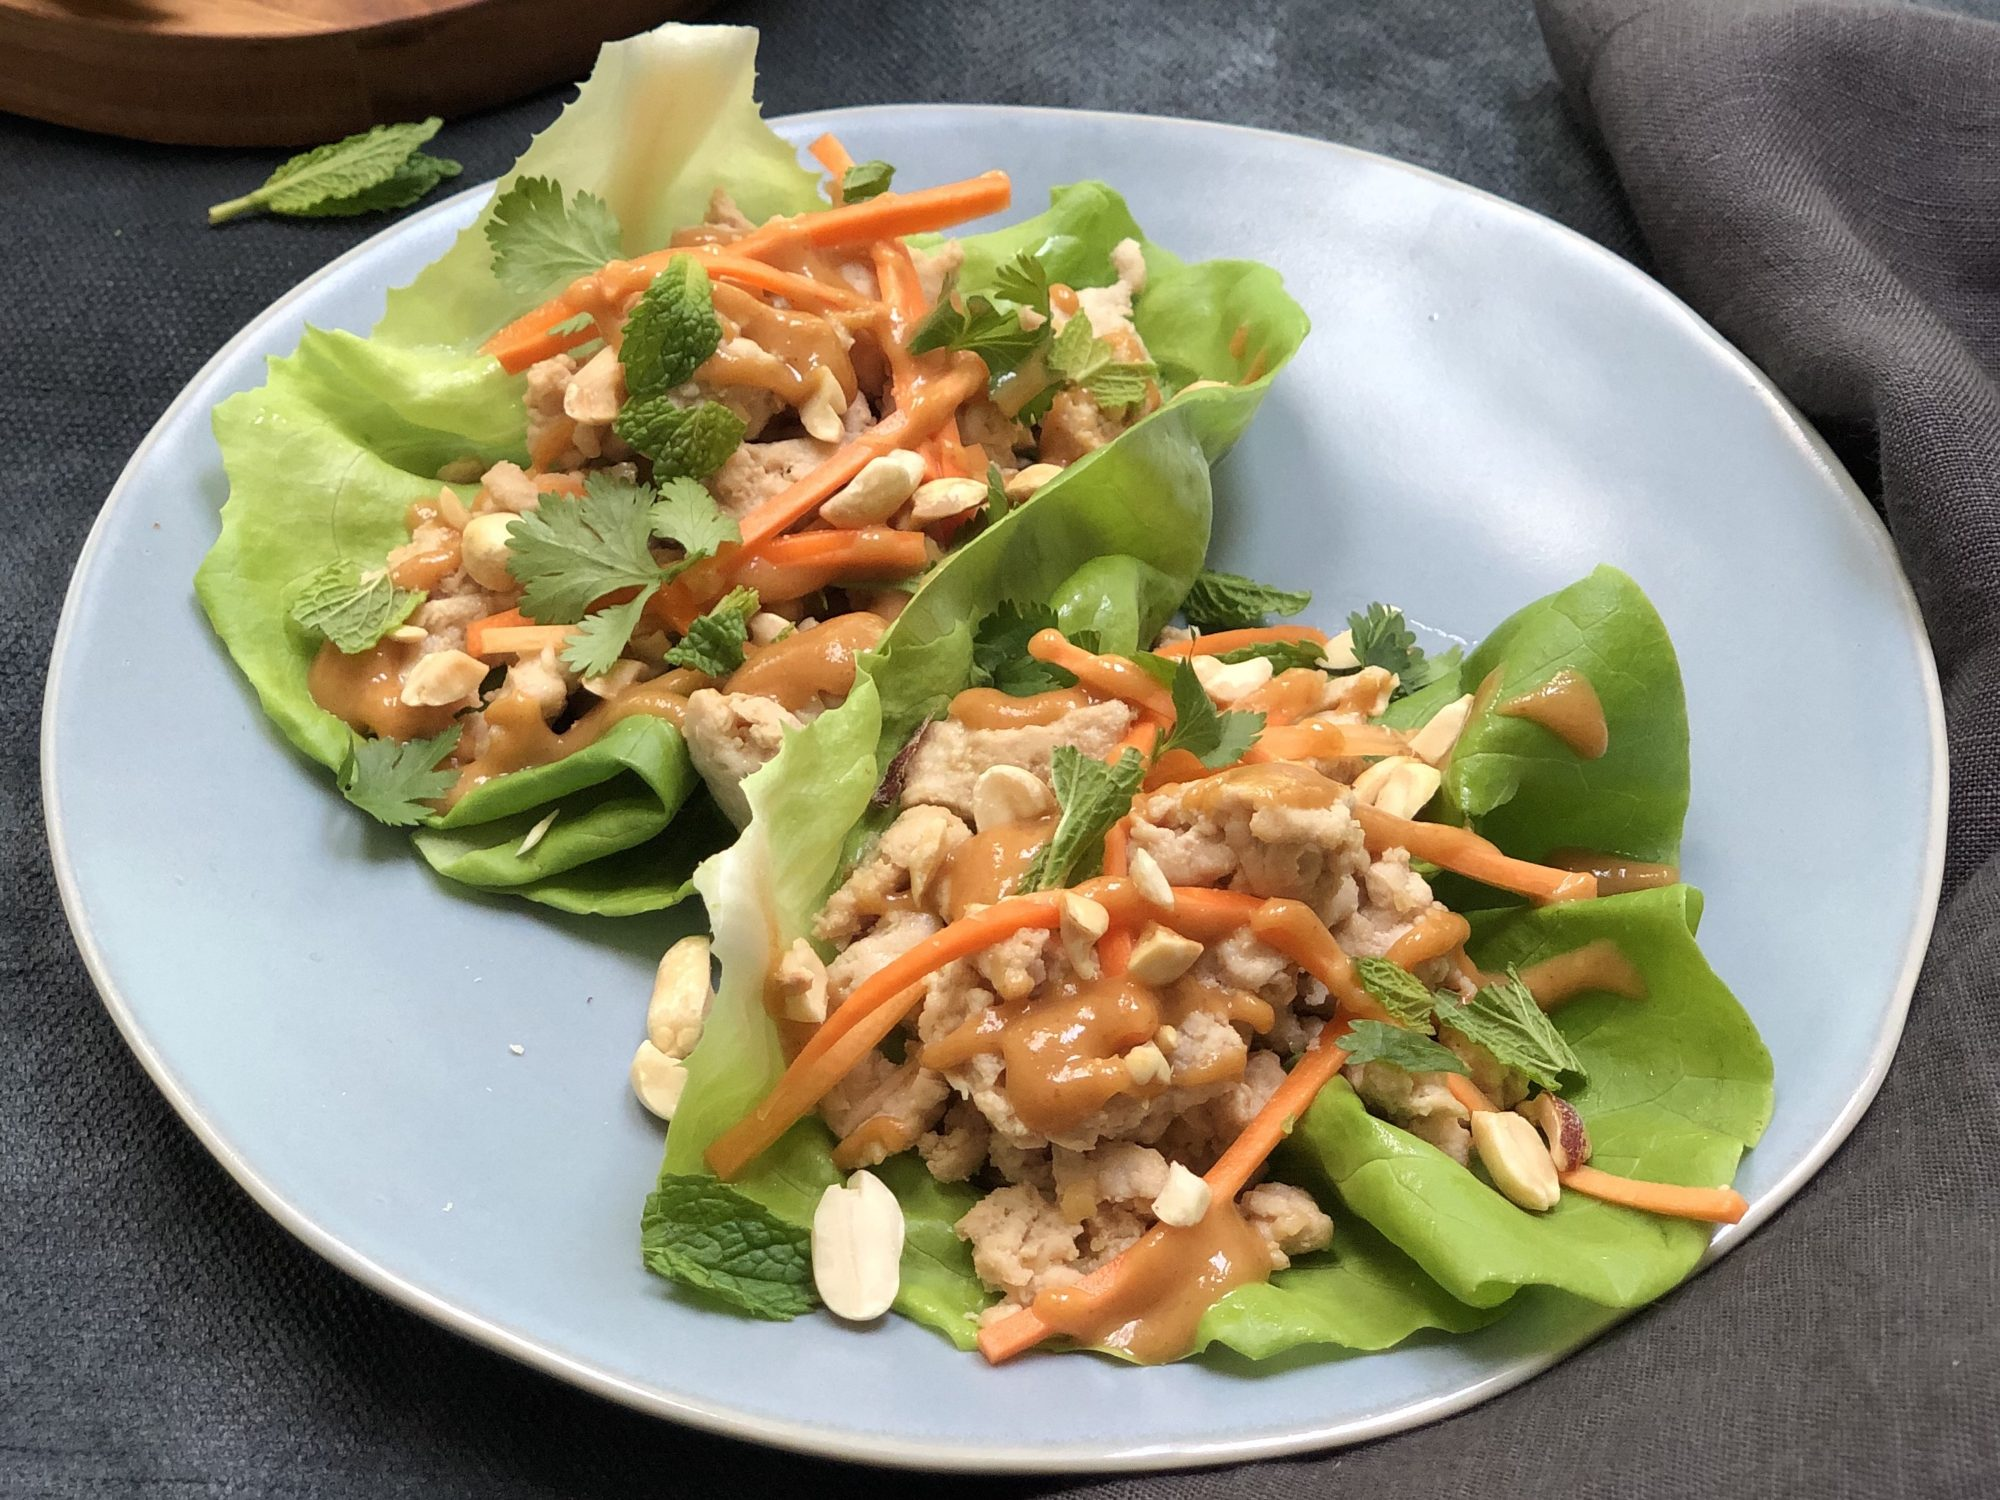 mr - Thai-Style Lettuce Wraps With Peanut Sauce Image